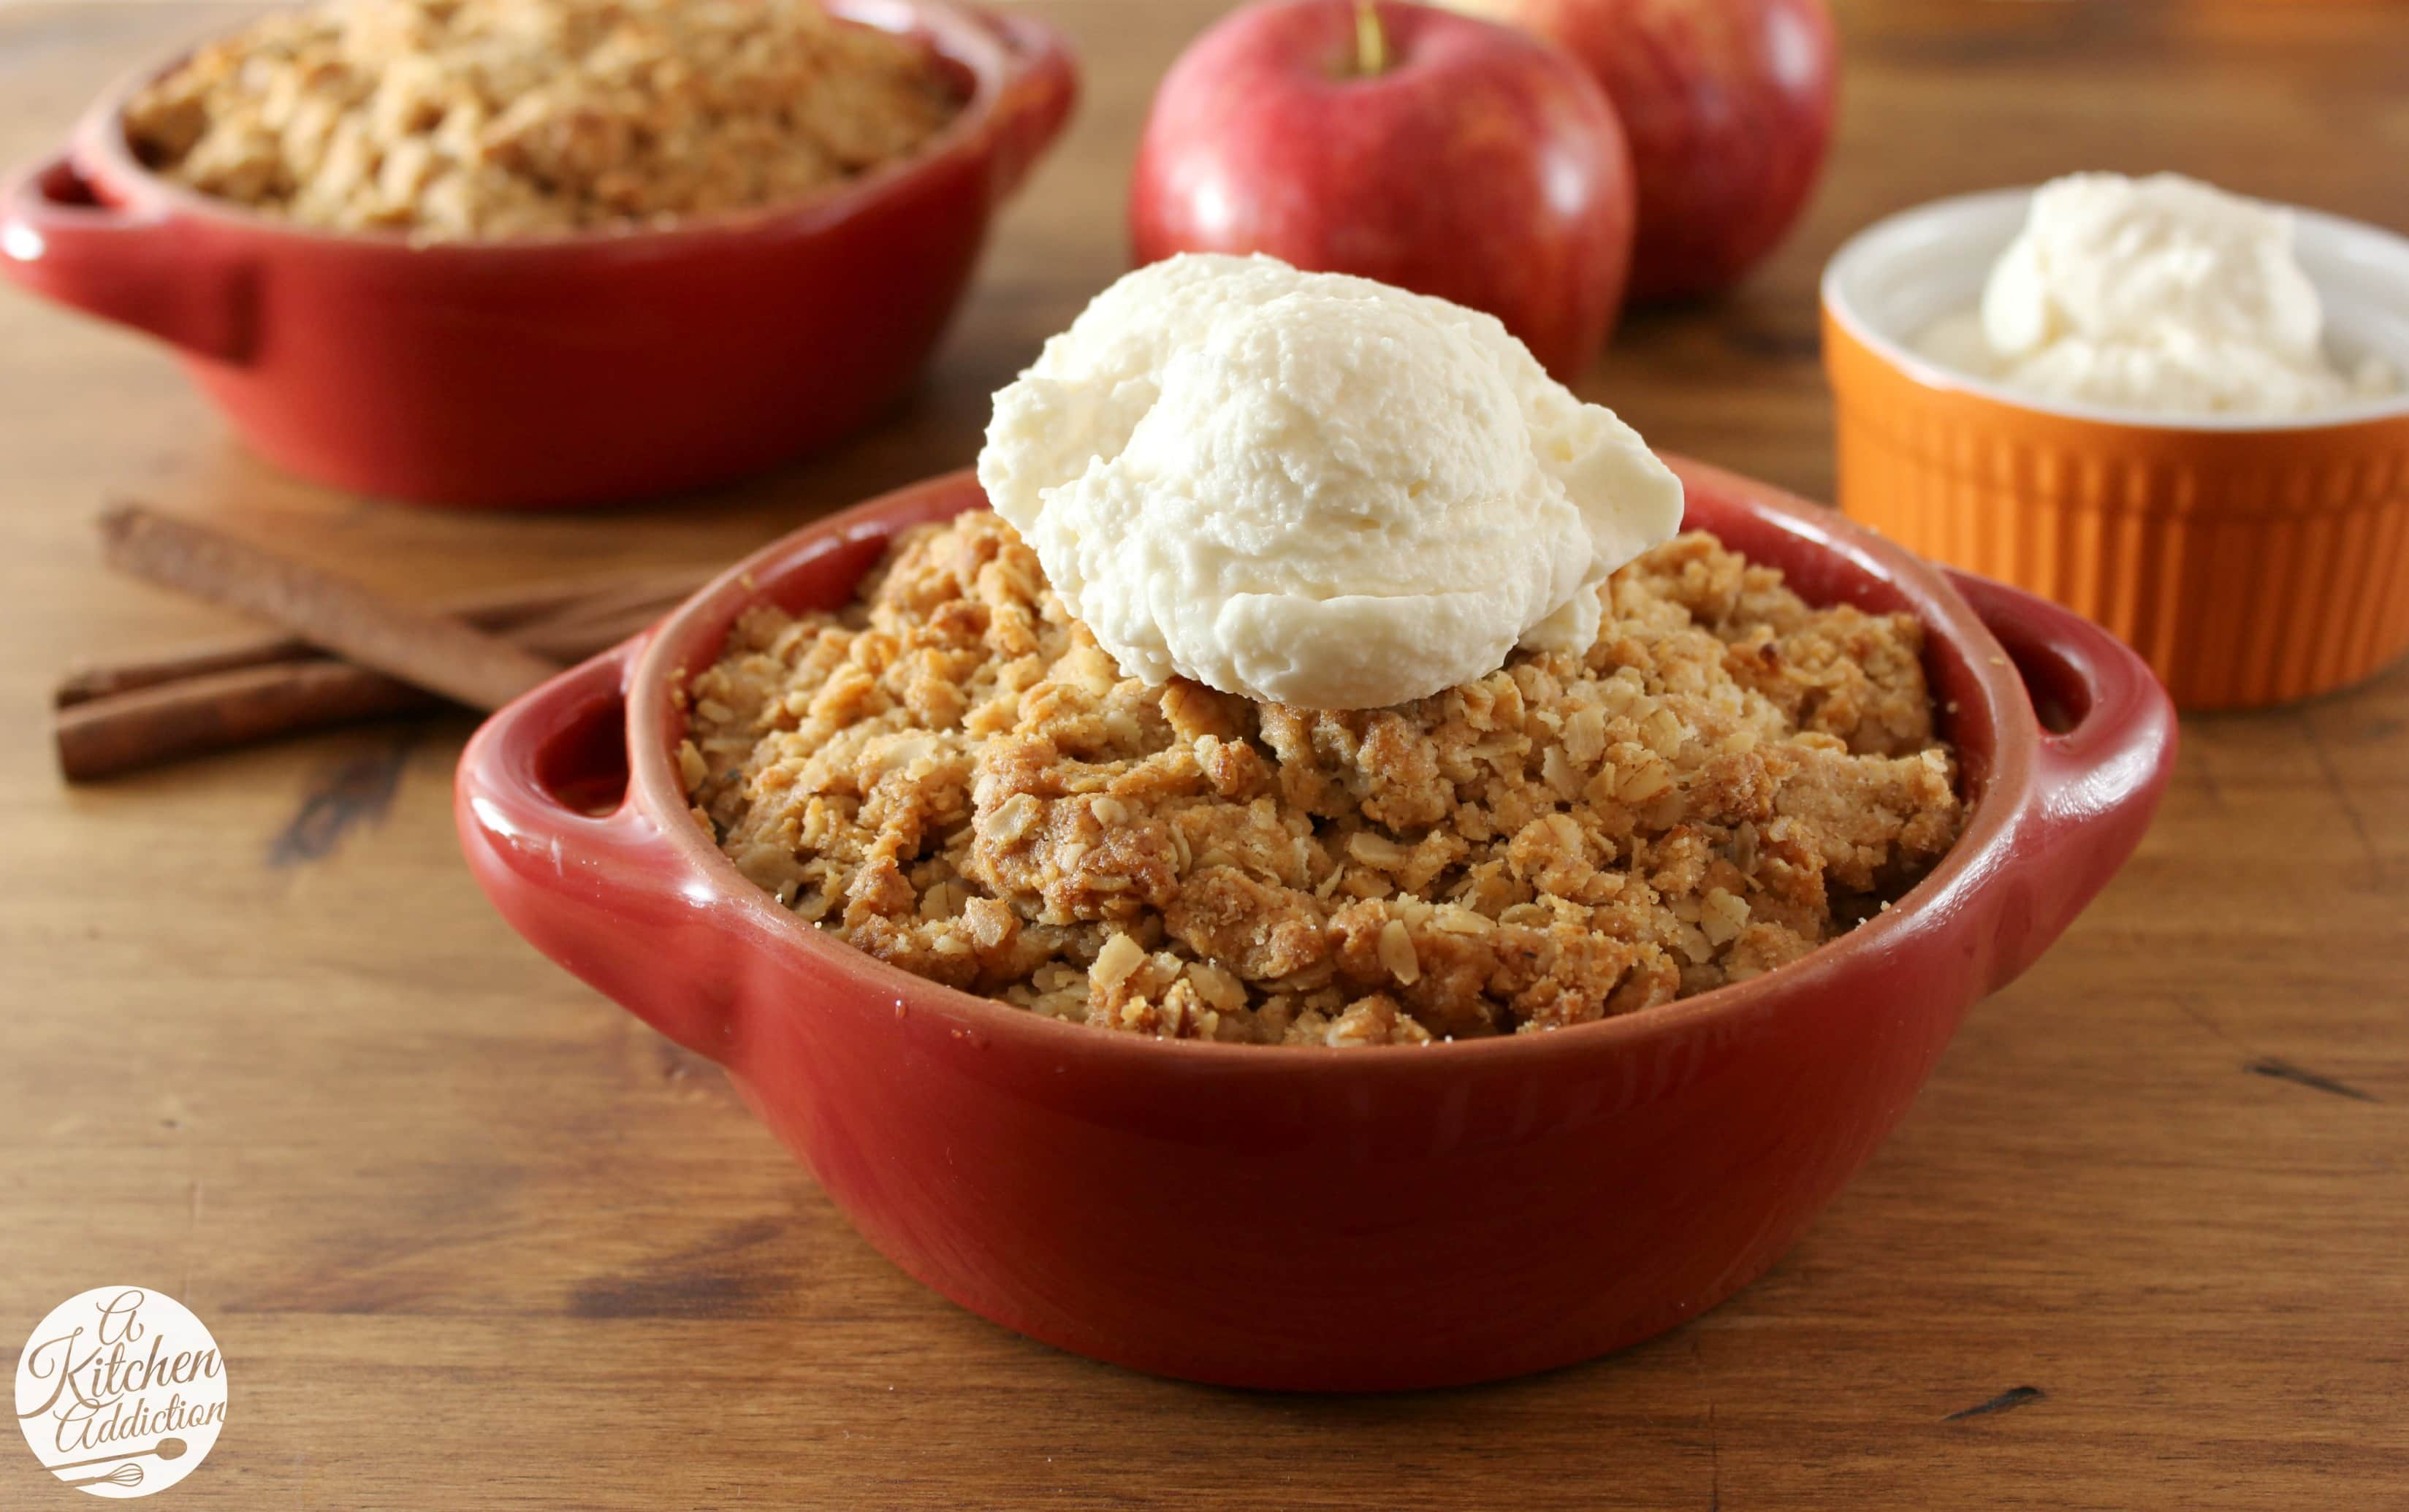 easy peanut butter apple crisp recipe l wwwa kitchen addictioncom - Crisp Kitchen